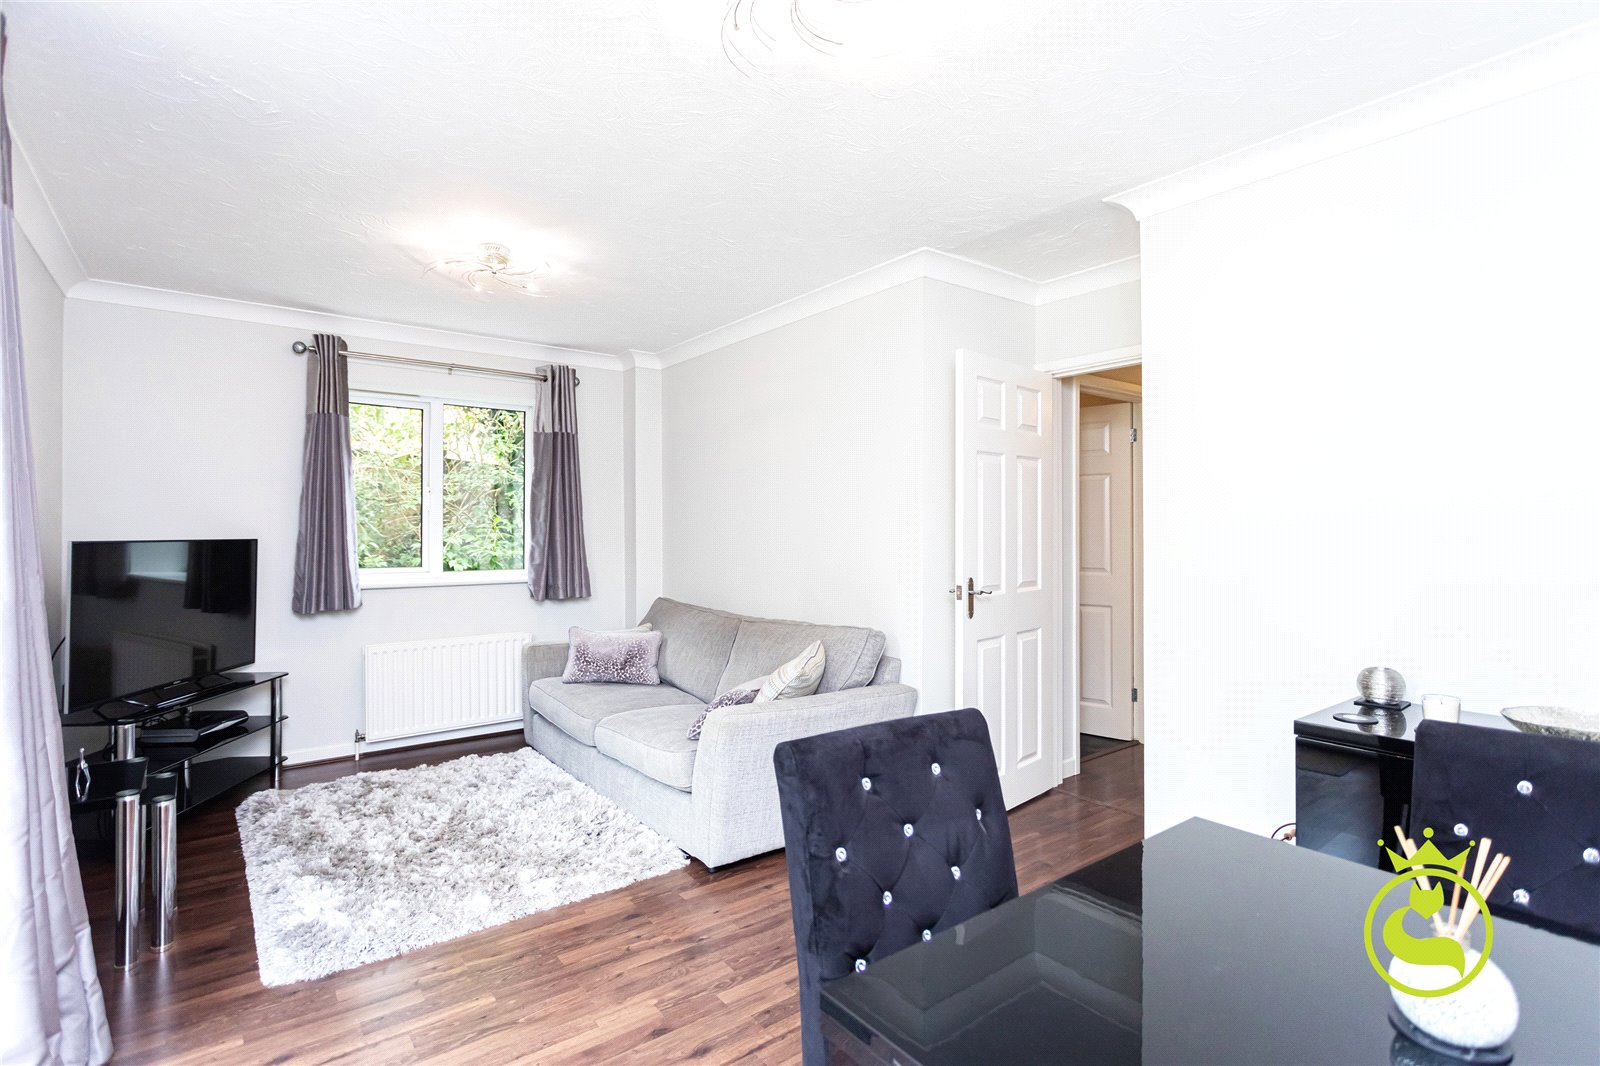 2 bed apartment to rent in Danecourt Road, Poole, BH14